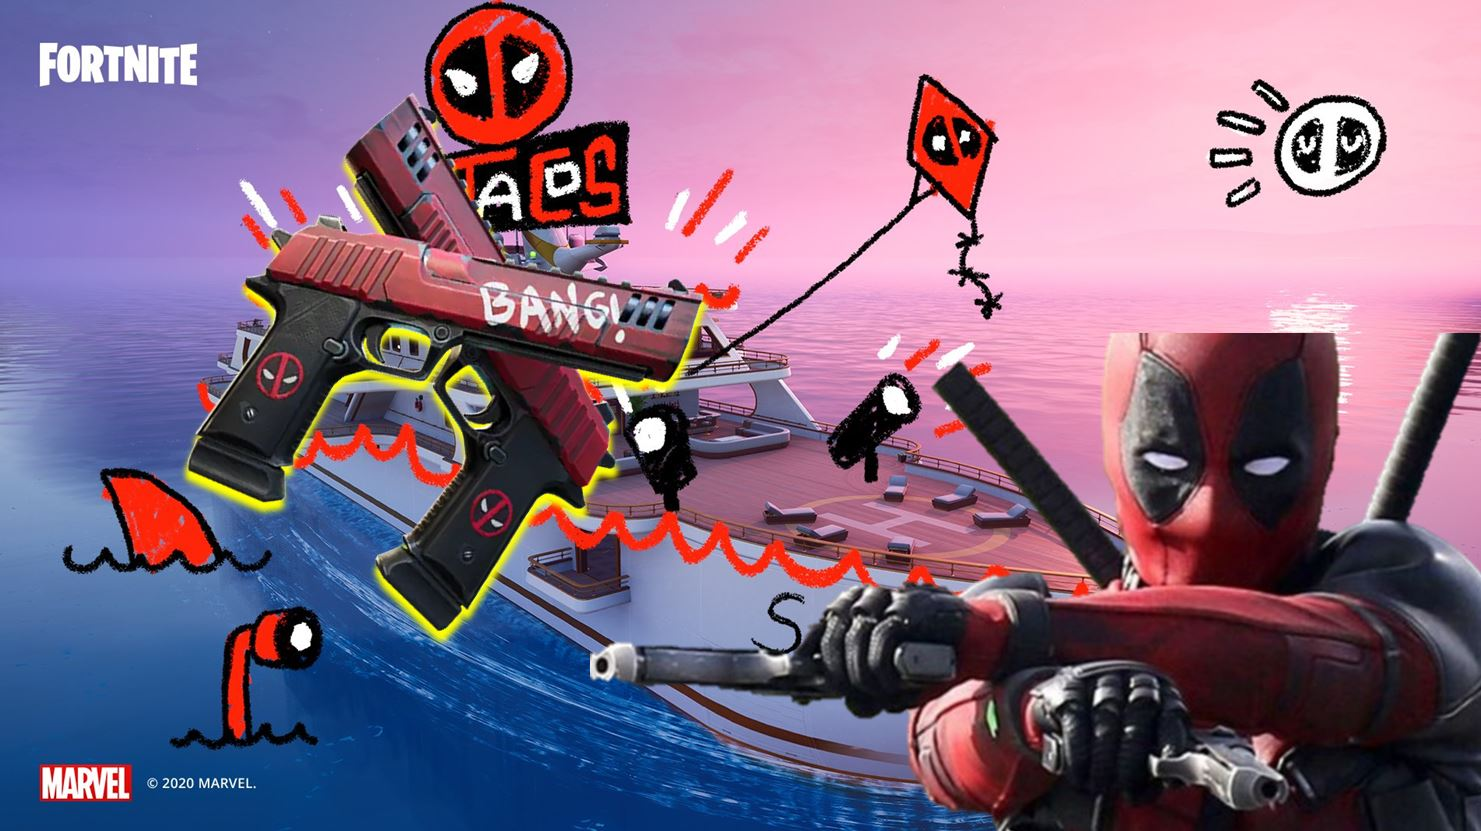 Deadpool Fortnite event revealed: Yacht POI, leaked items and more